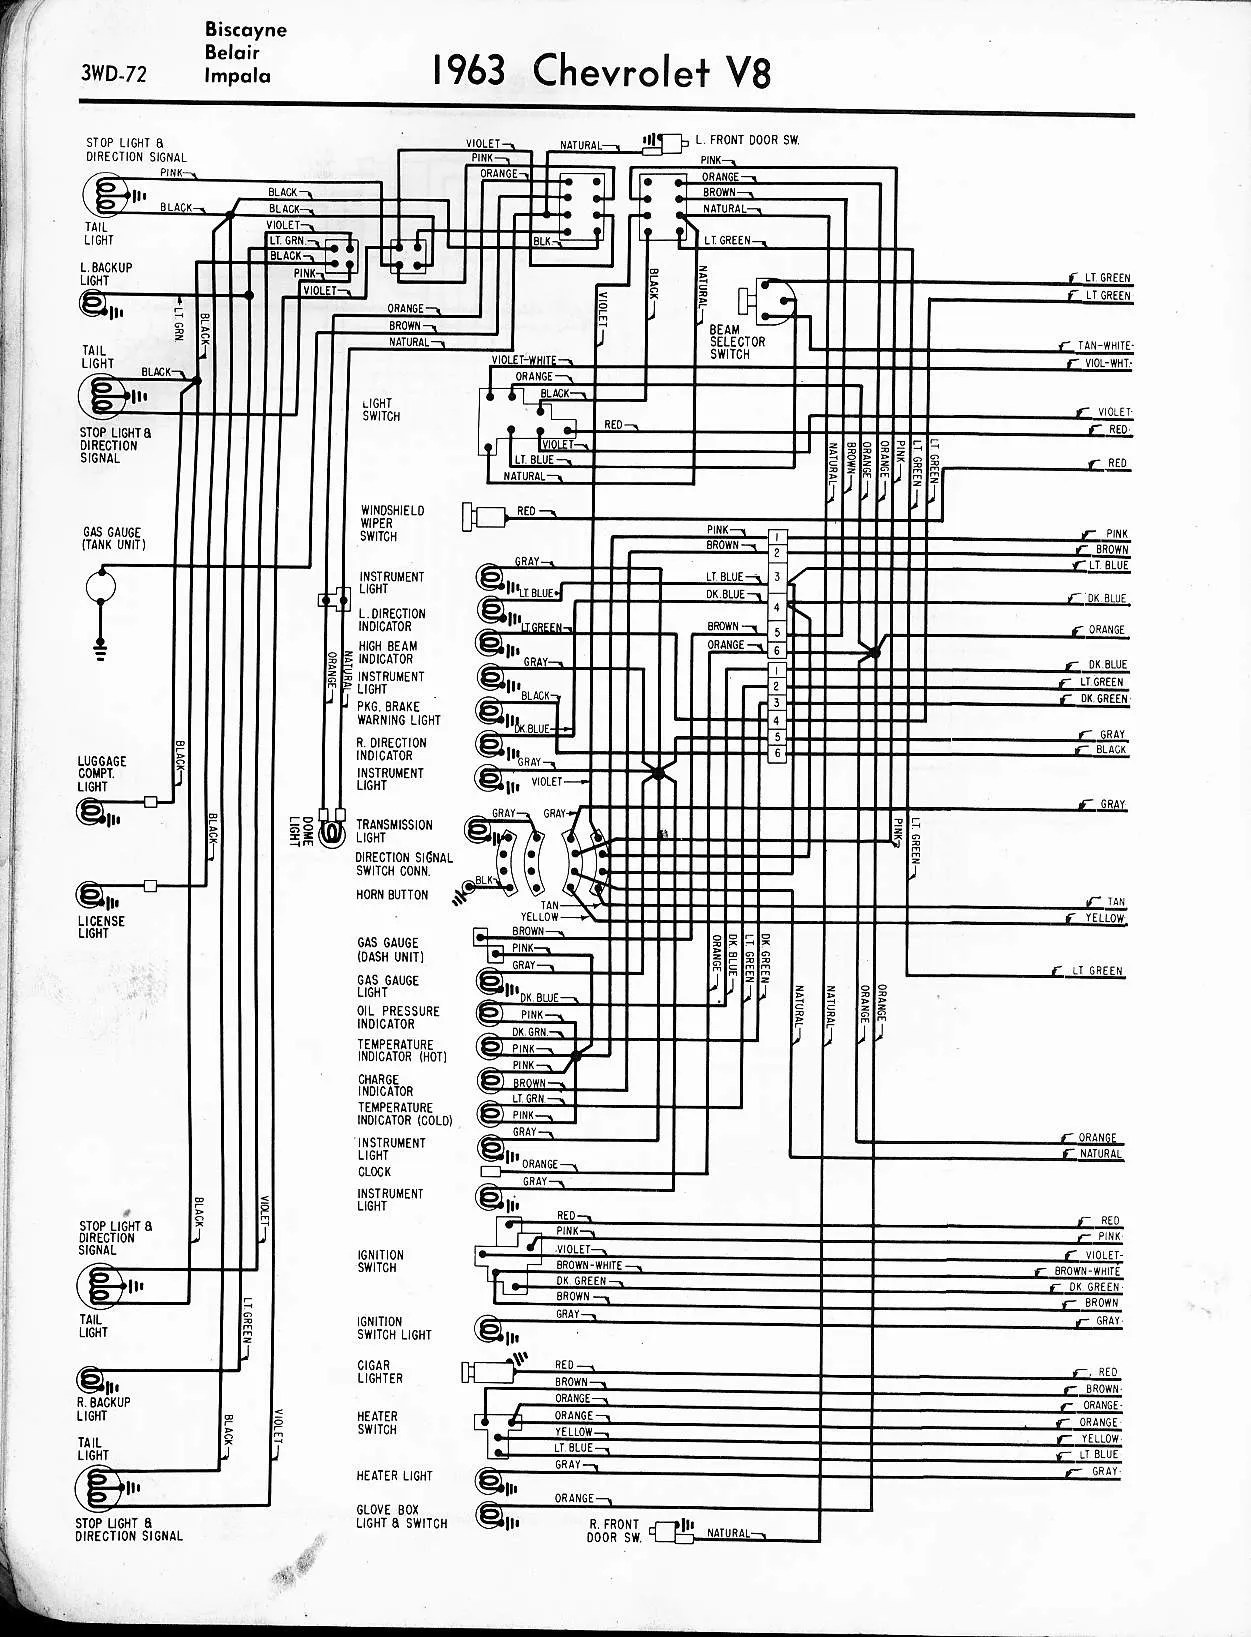 hight resolution of fuse block diagram for 1963 impala wiring diagram sheet 1964 impala fuse panel diagram